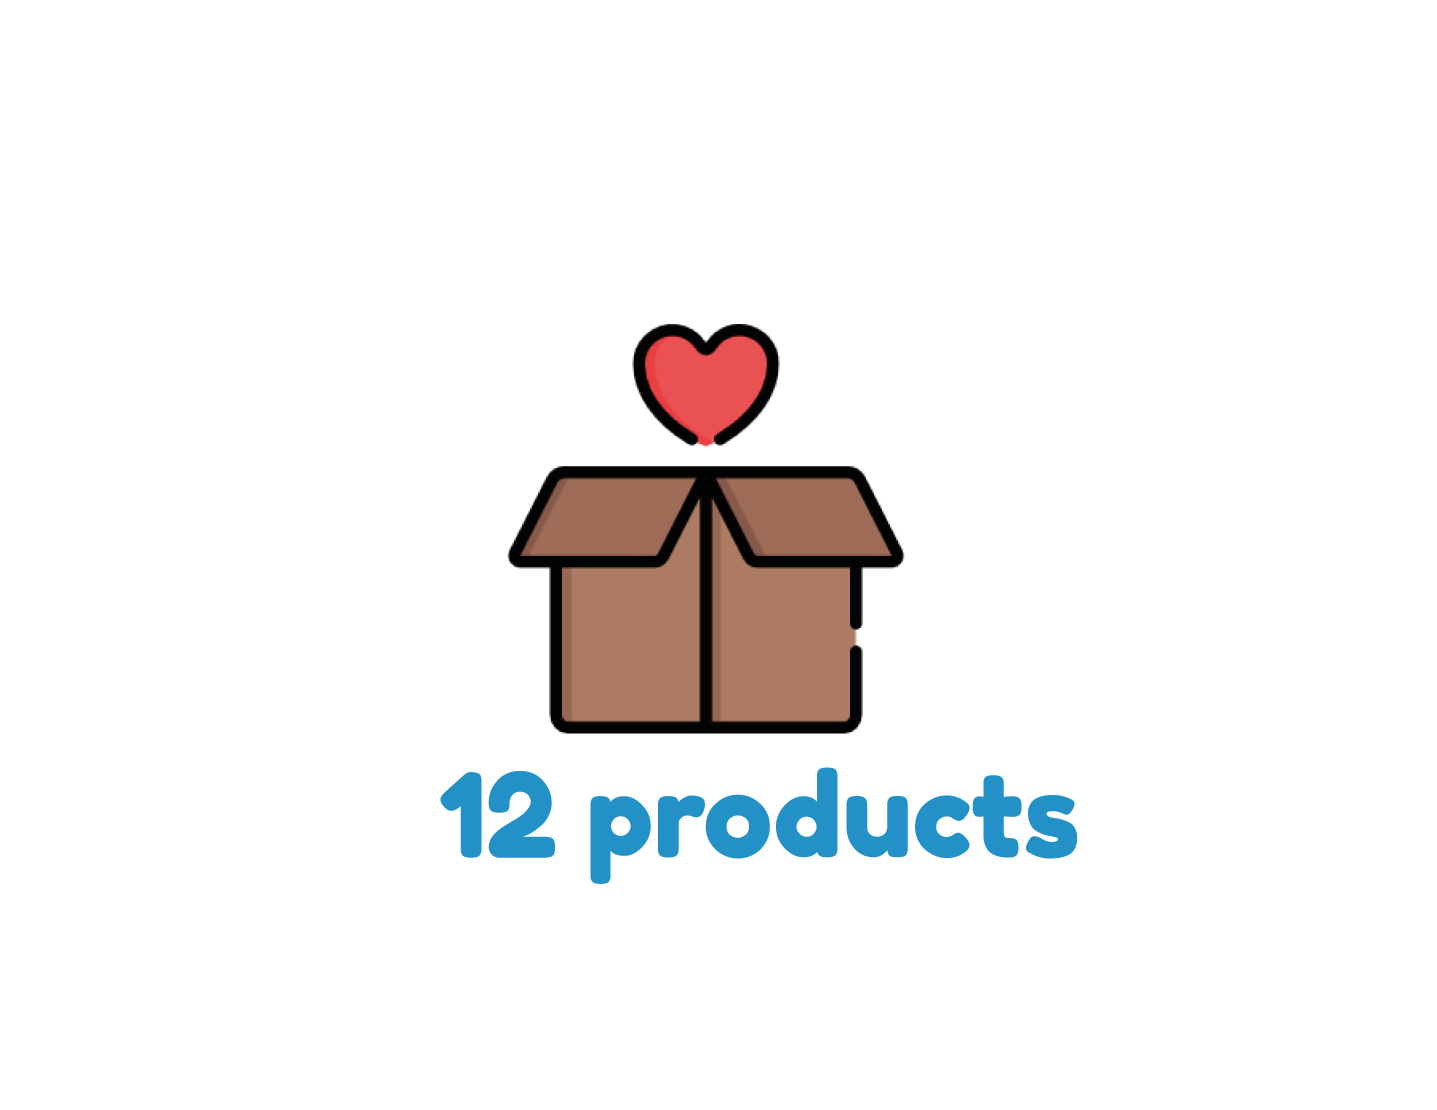 Premium Box 12 Products